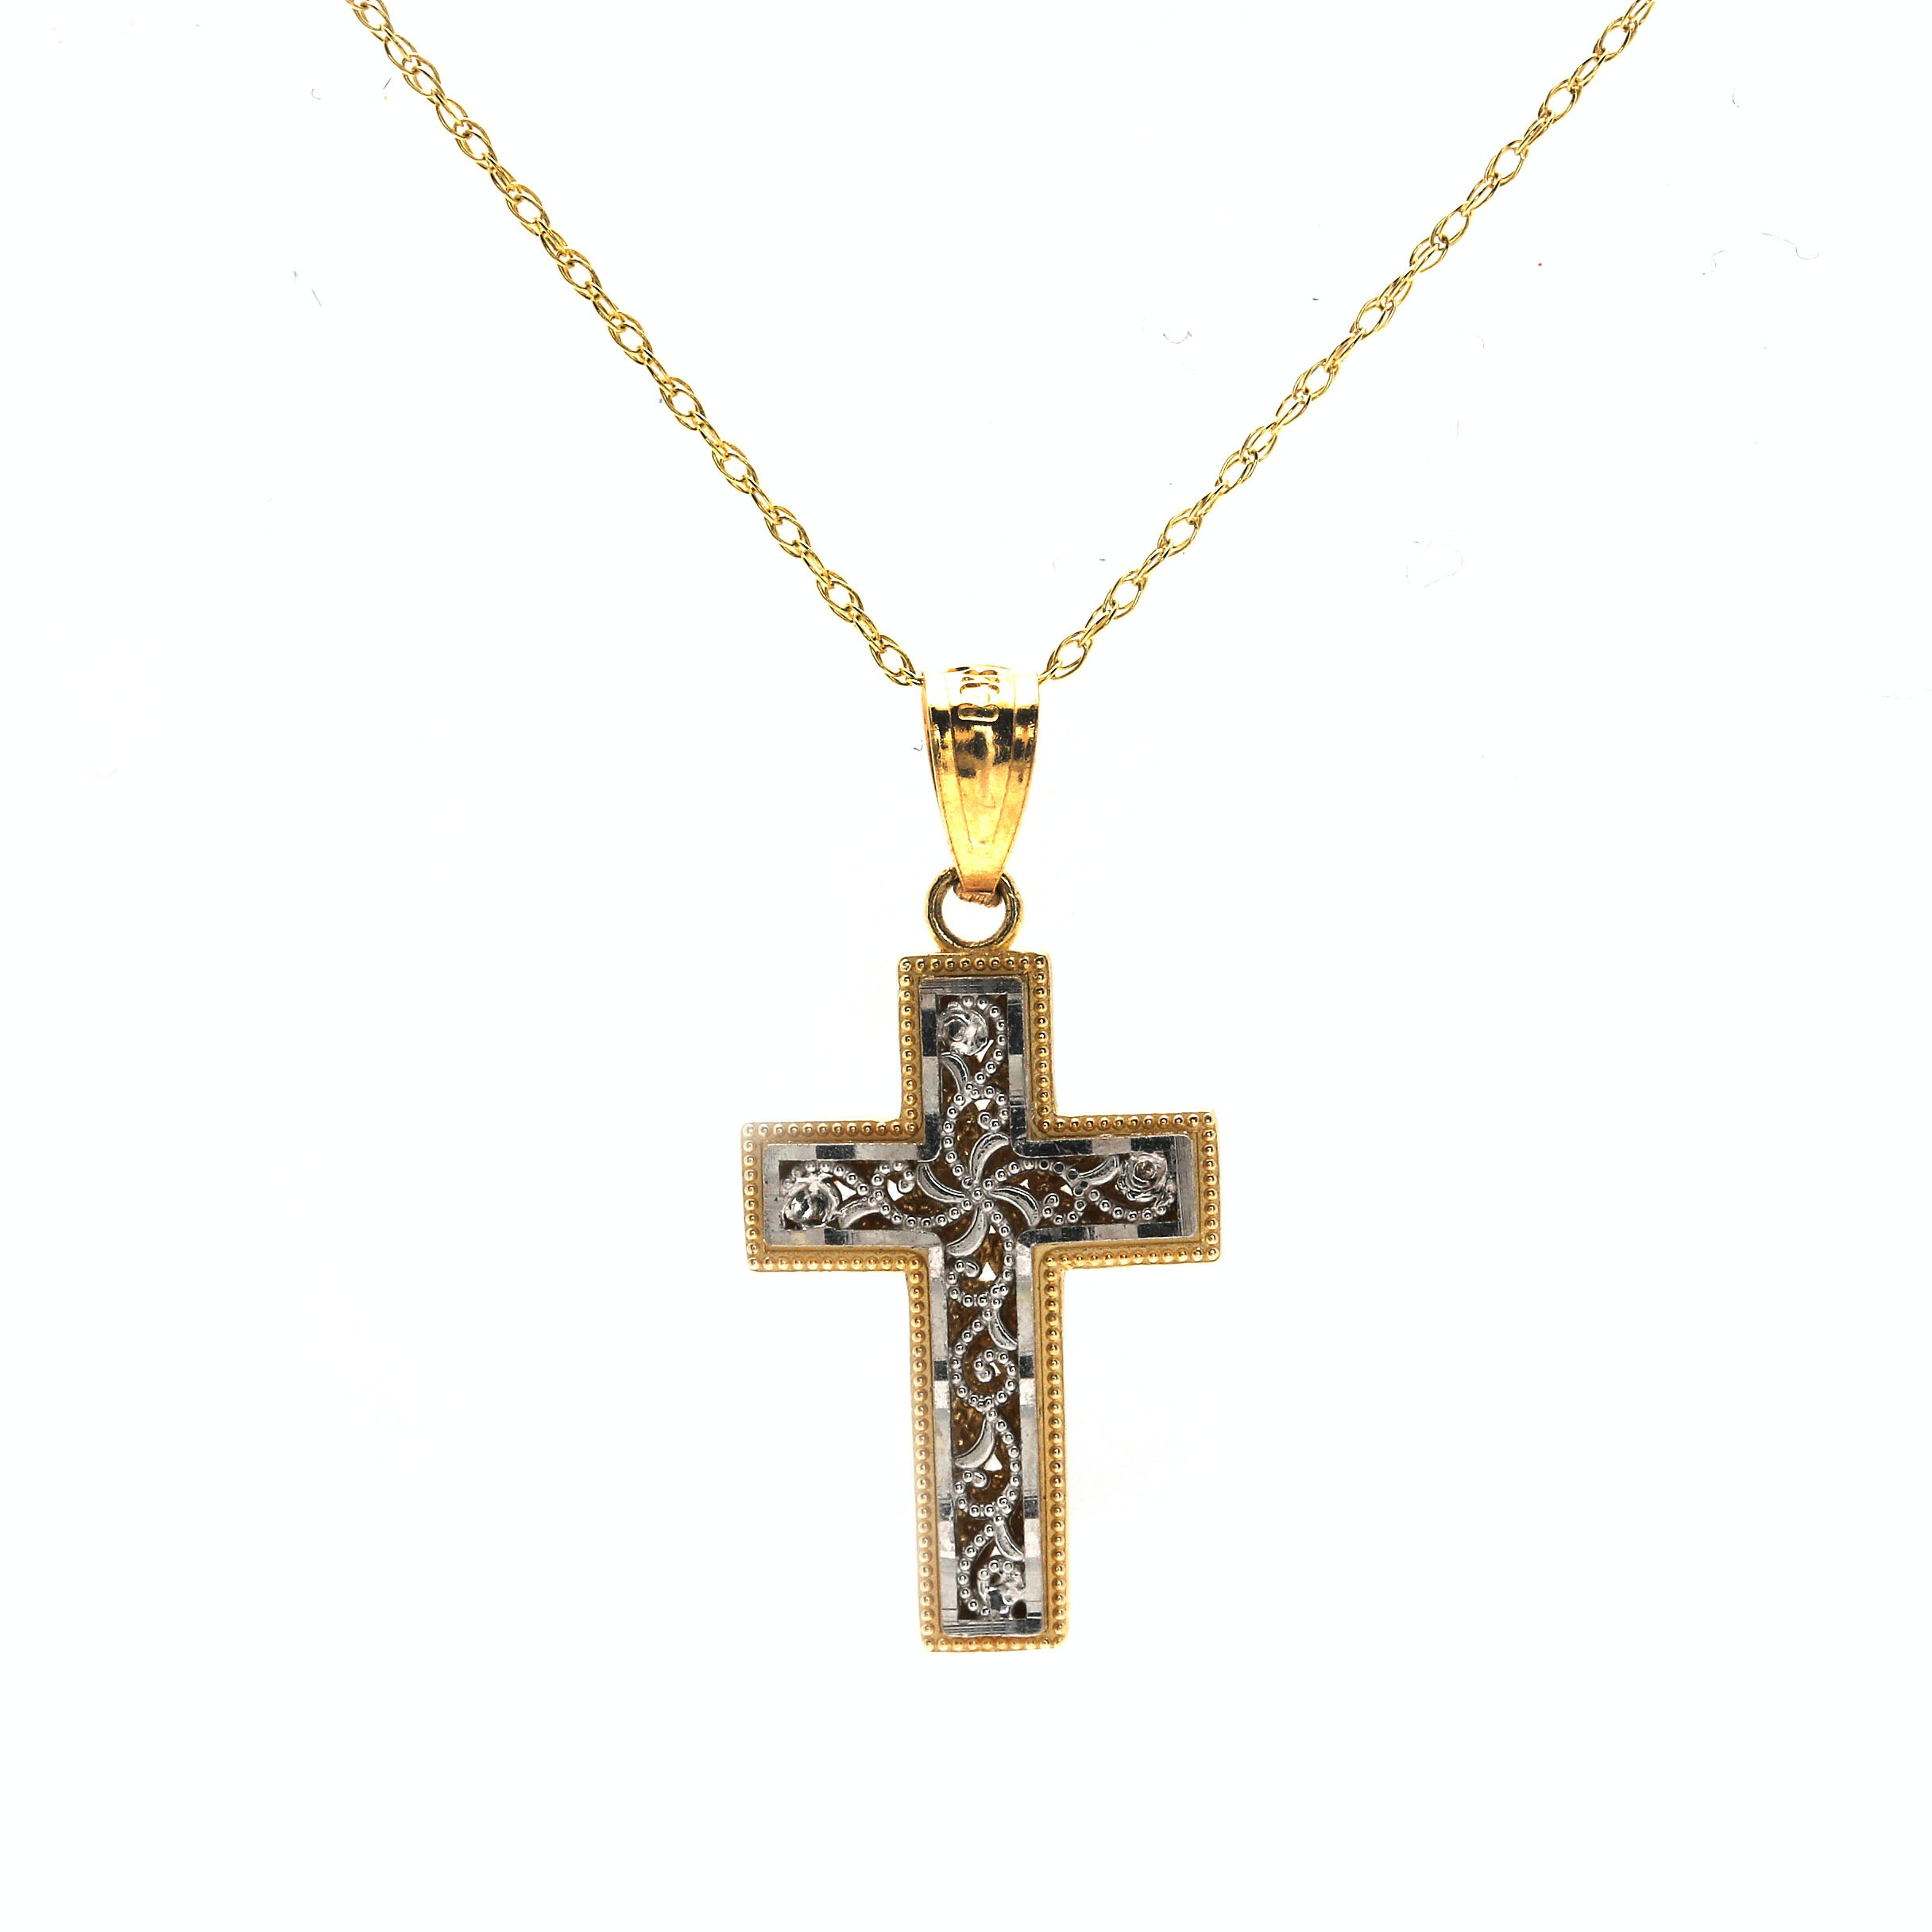 14K Yellow and White Gold Reversible Cross Necklace